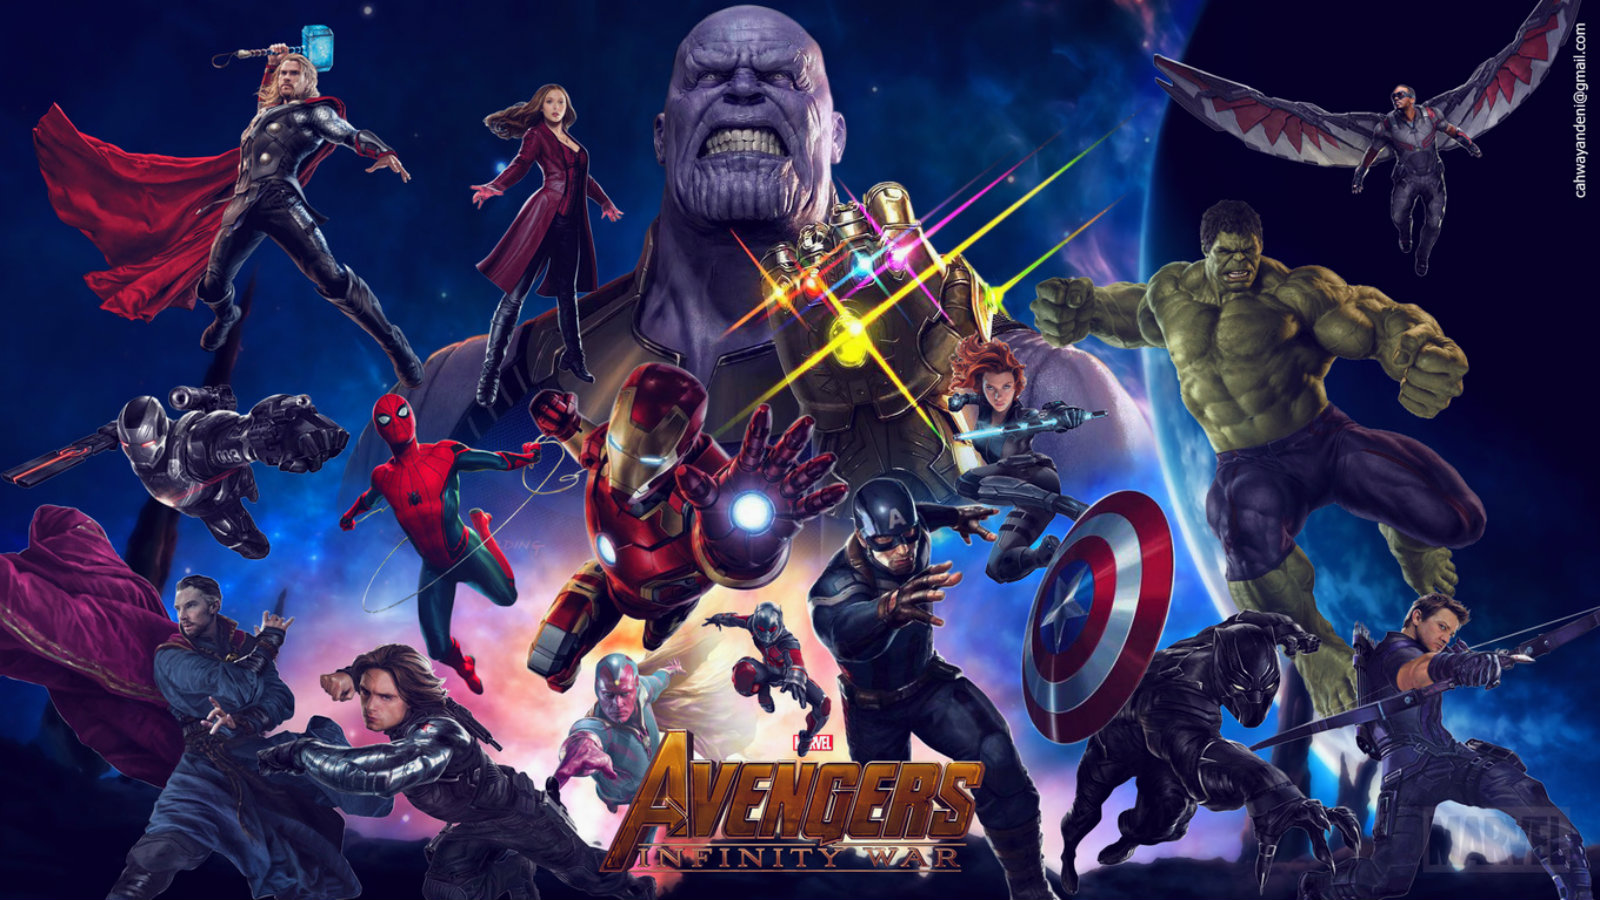 Avengers: Infinity War 1 & 2 images Avengers: Infinity War HD wallpaper and background photos